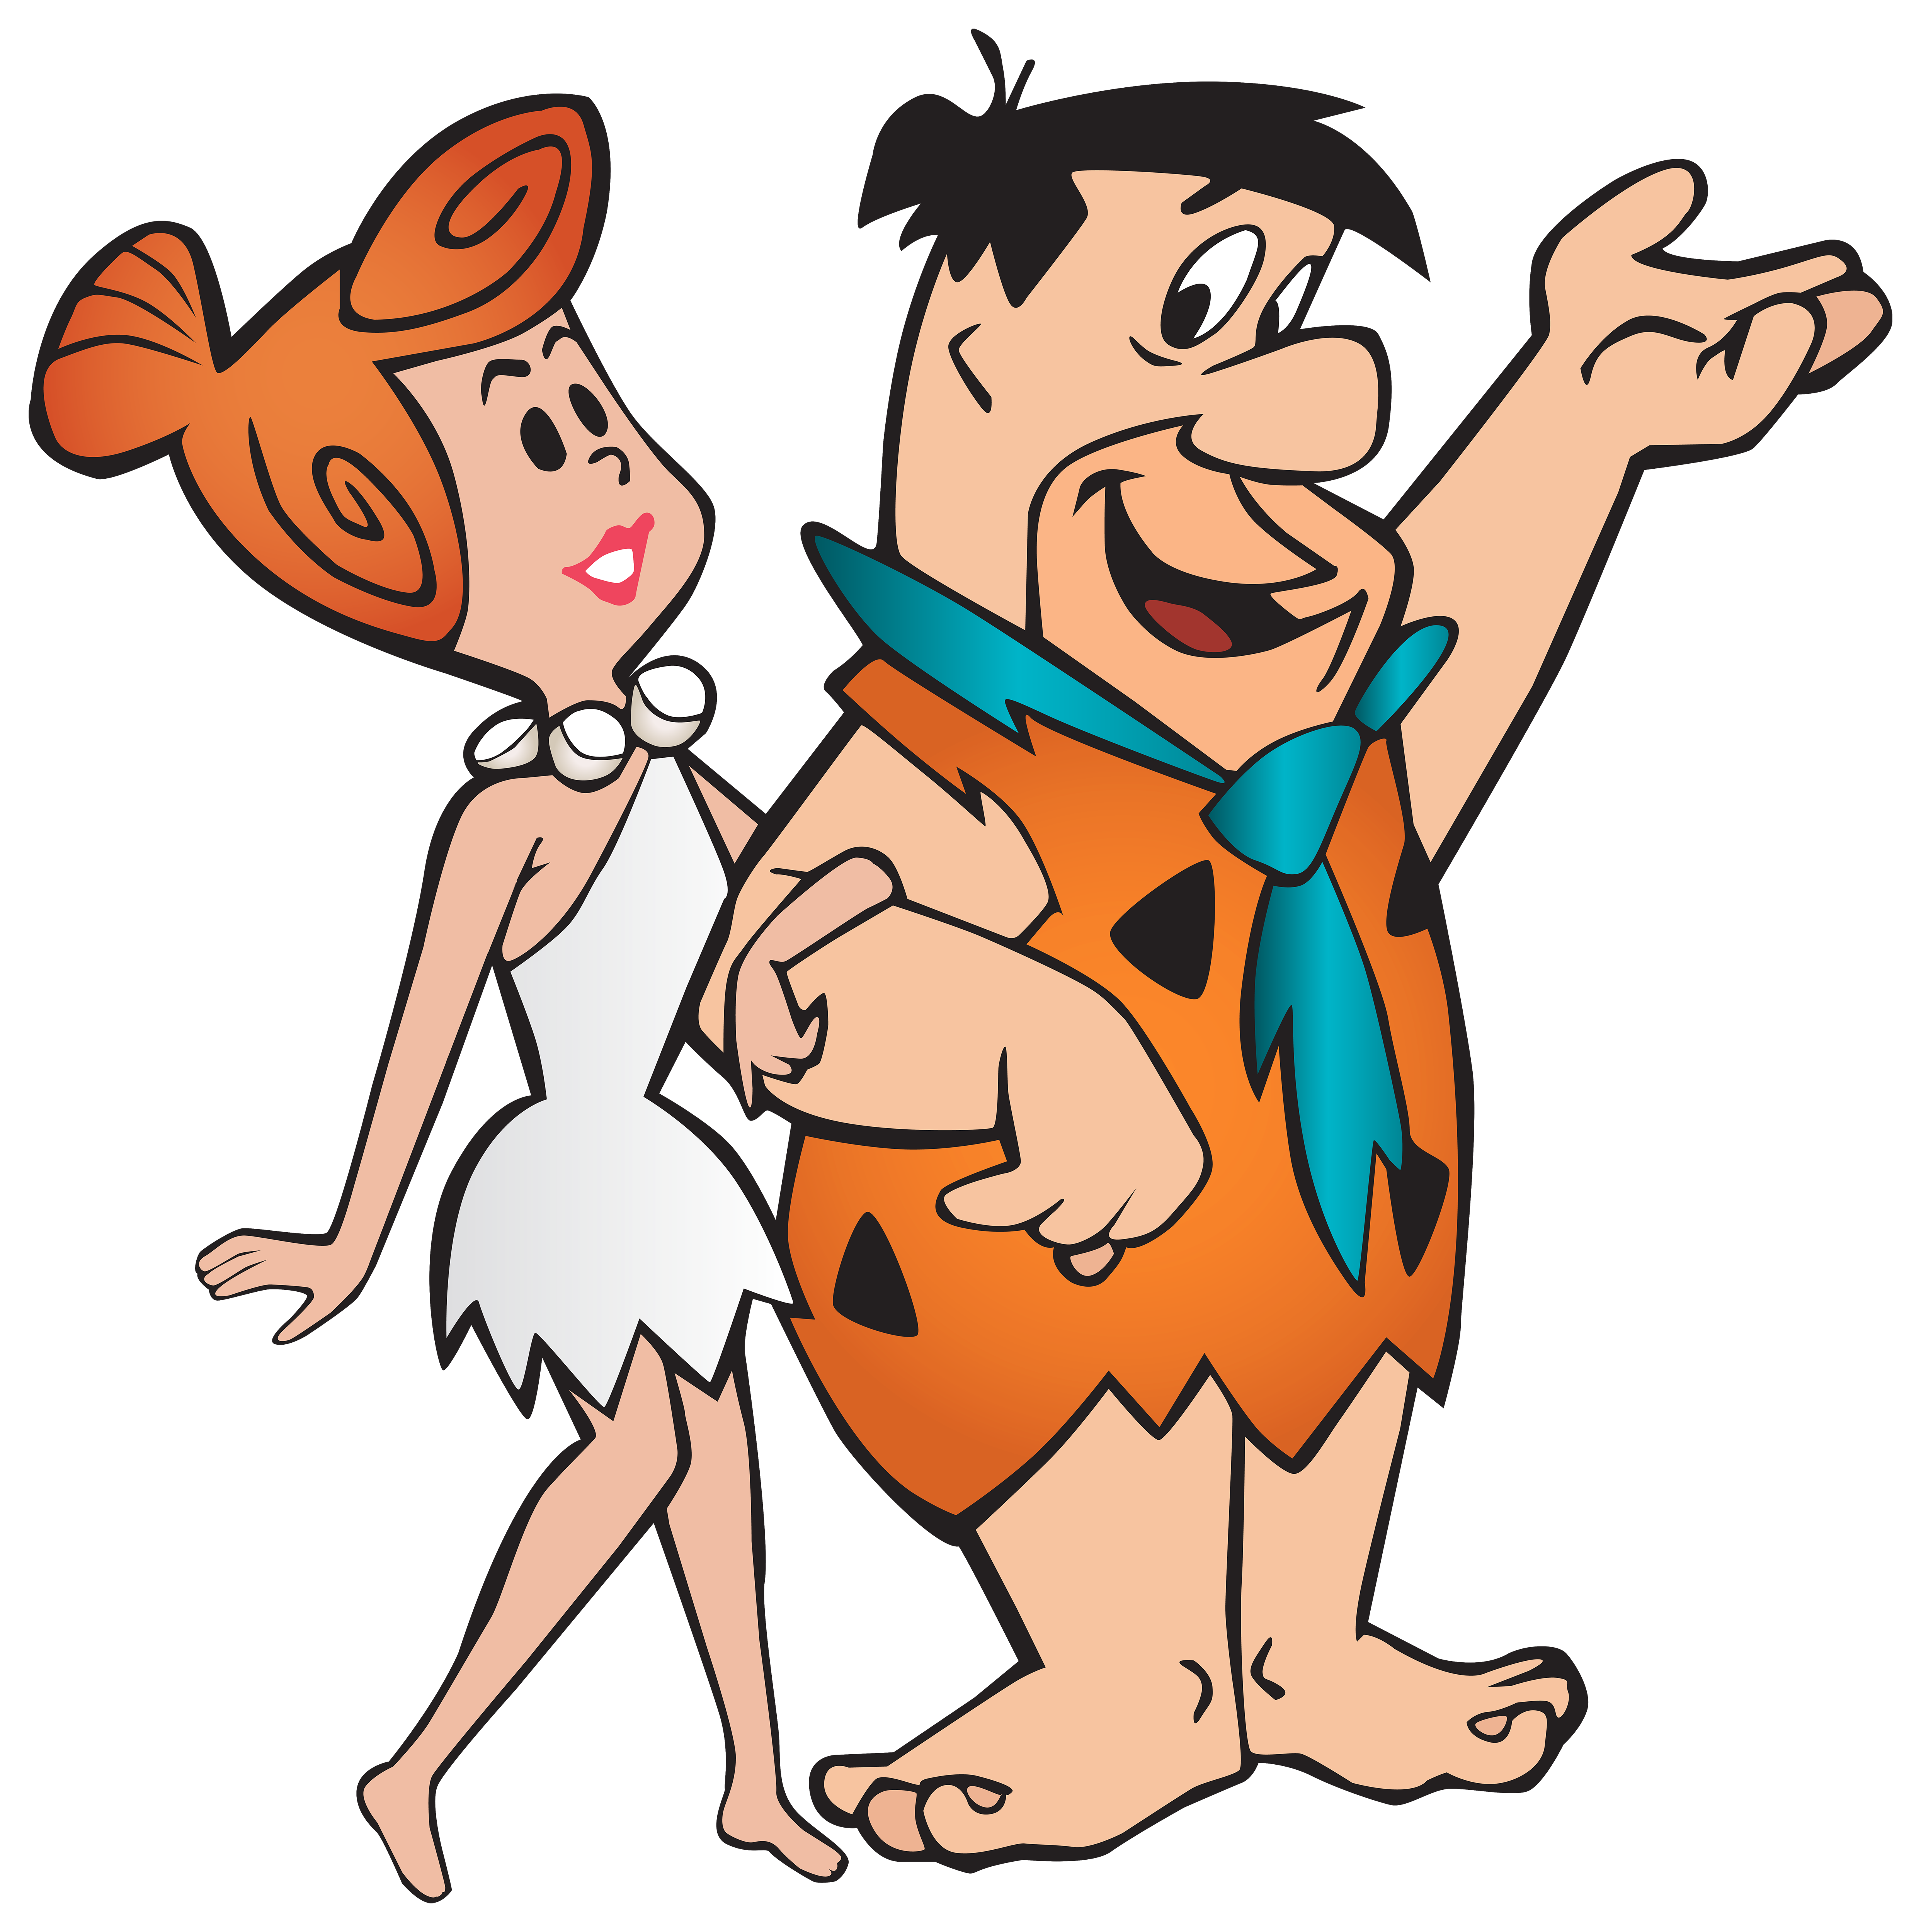 4971x5000 Fred And Wilma Flintstone Transparent Png Clip Art Image